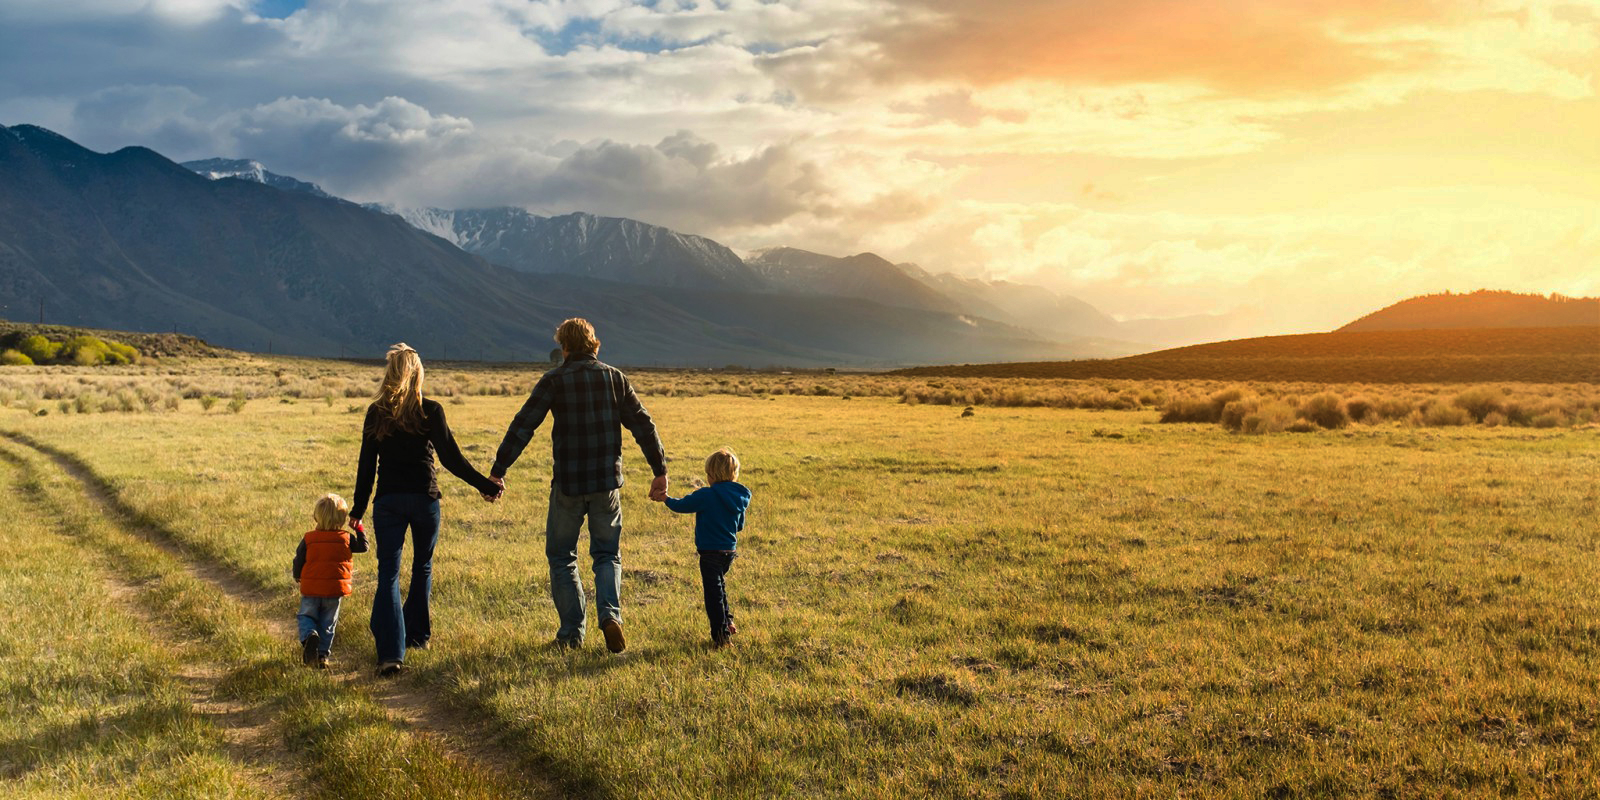 Happy family walking through field - Tricia J. Mlnarik, LMFT, family counseling in San Jose, CA